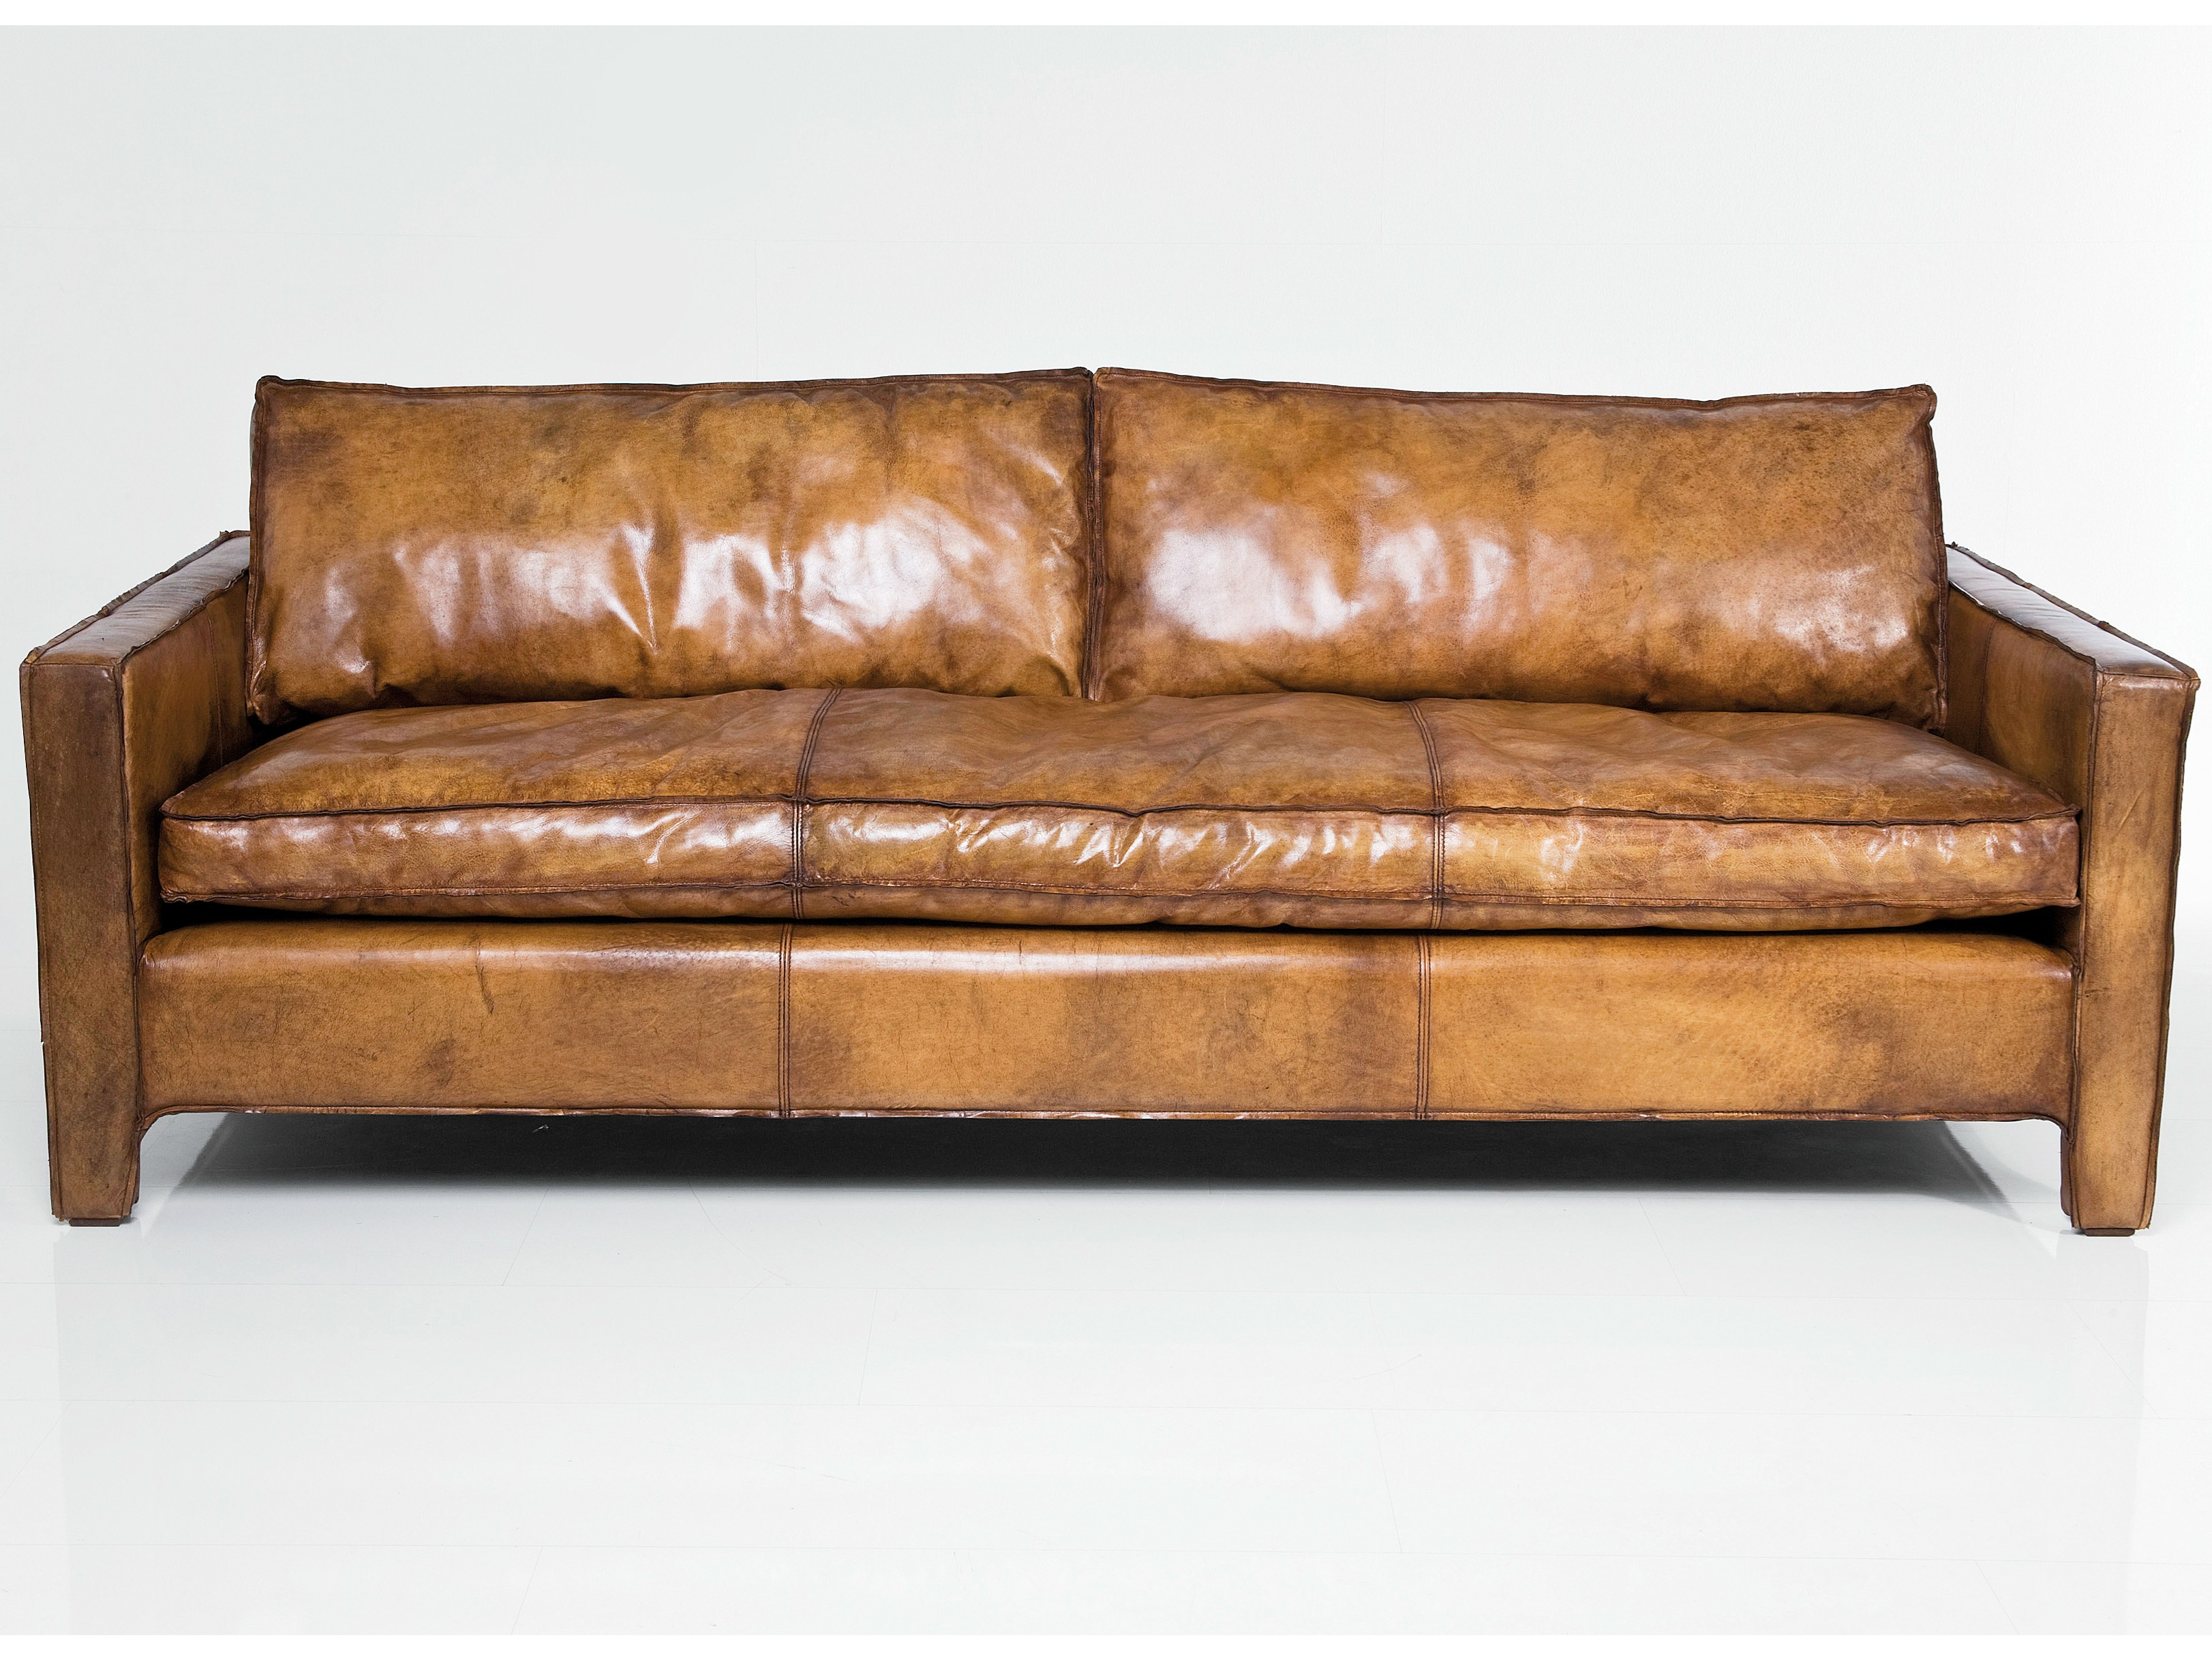 Designer couch leder  3 seater leather sofa BRUNO By KARE-DESIGN